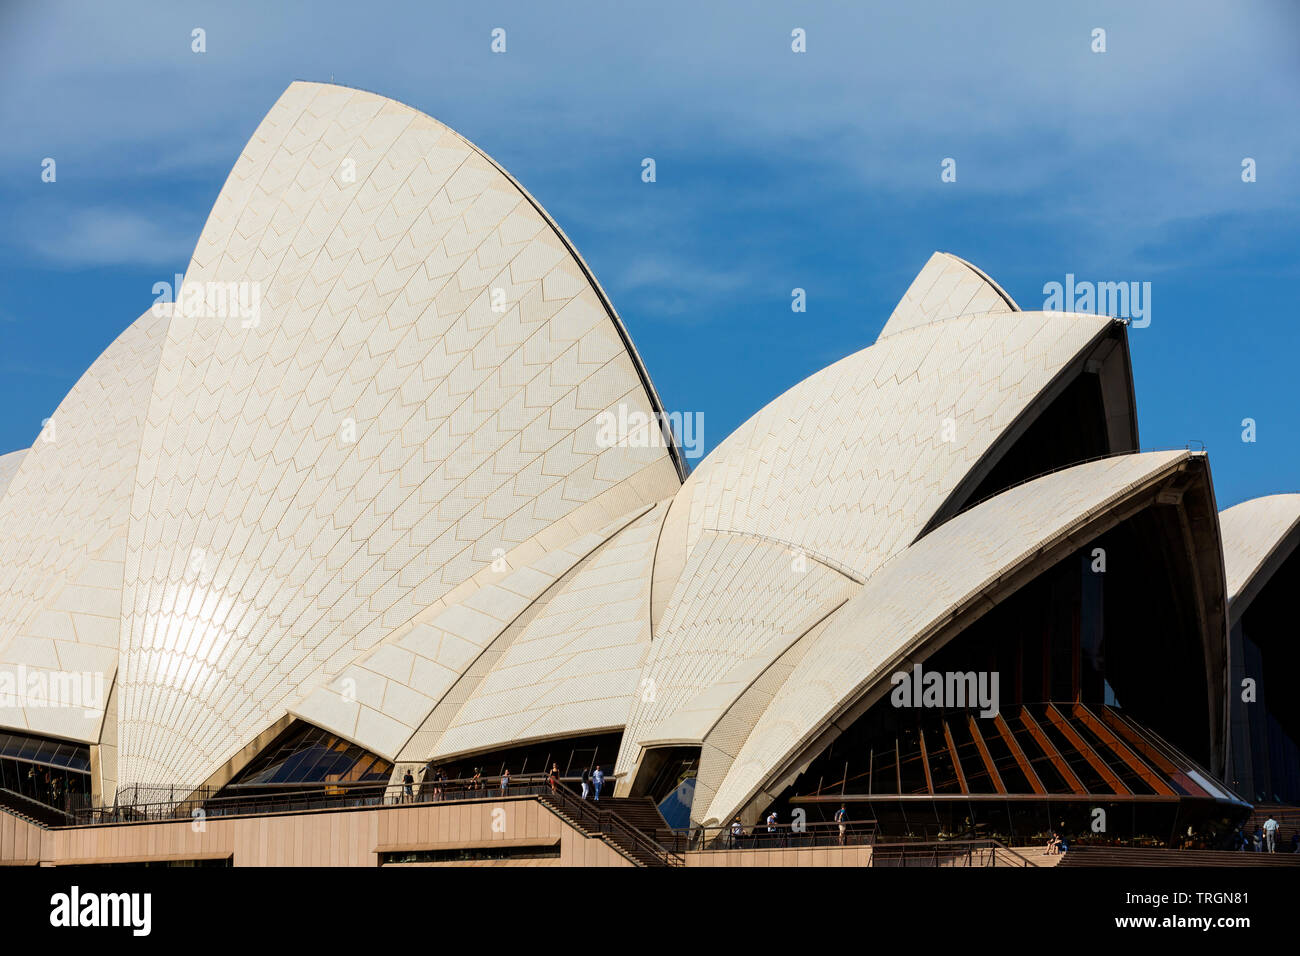 Page 3 Jørn Utzon High Resolution Stock Photography And Images Alamy